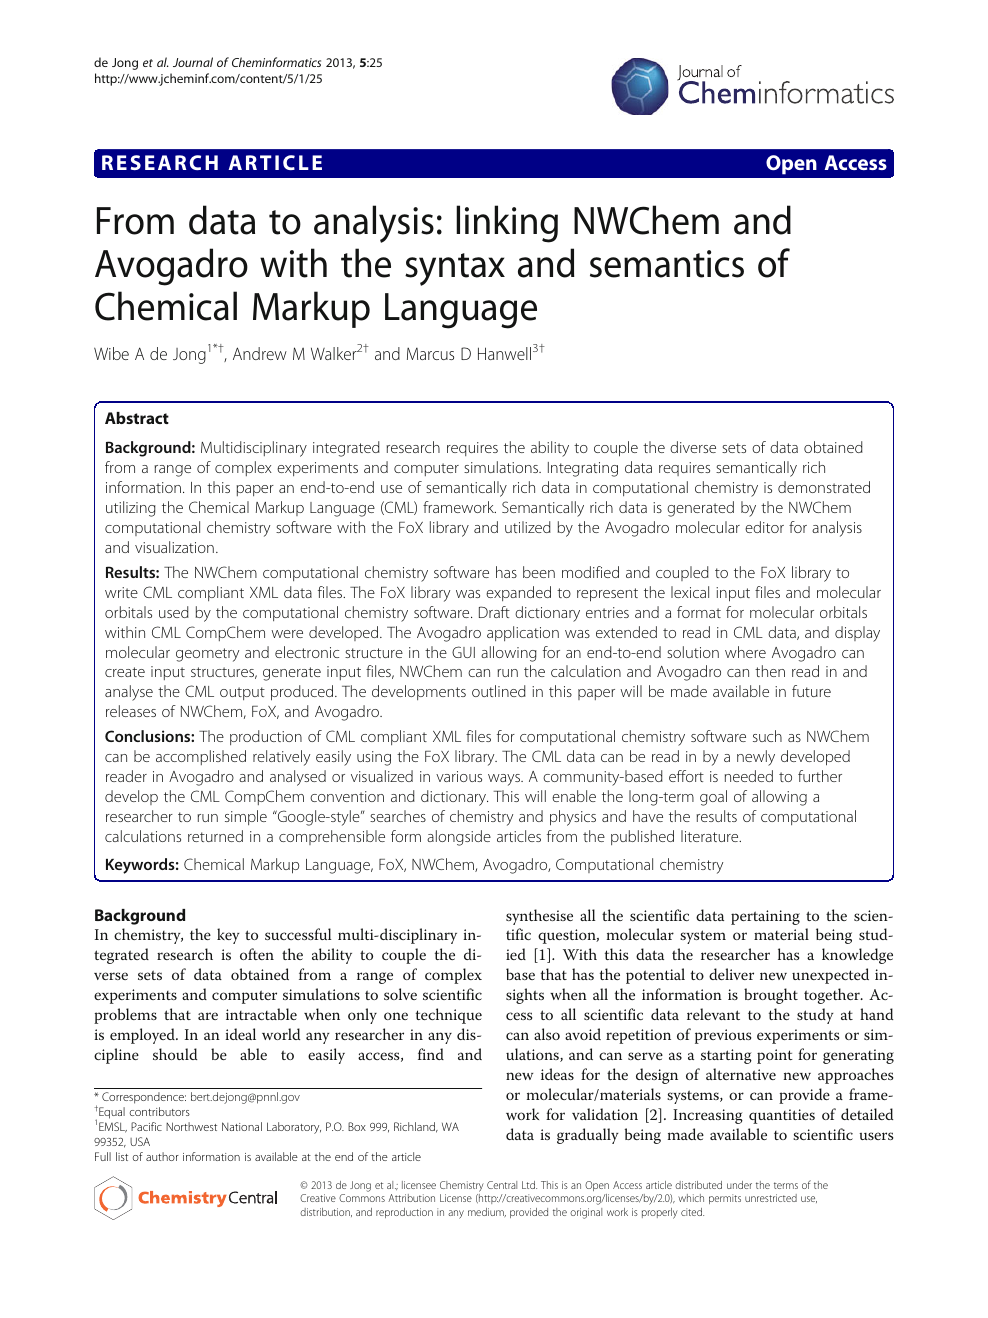 From data to analysis: linking NWChem and Avogadro with the